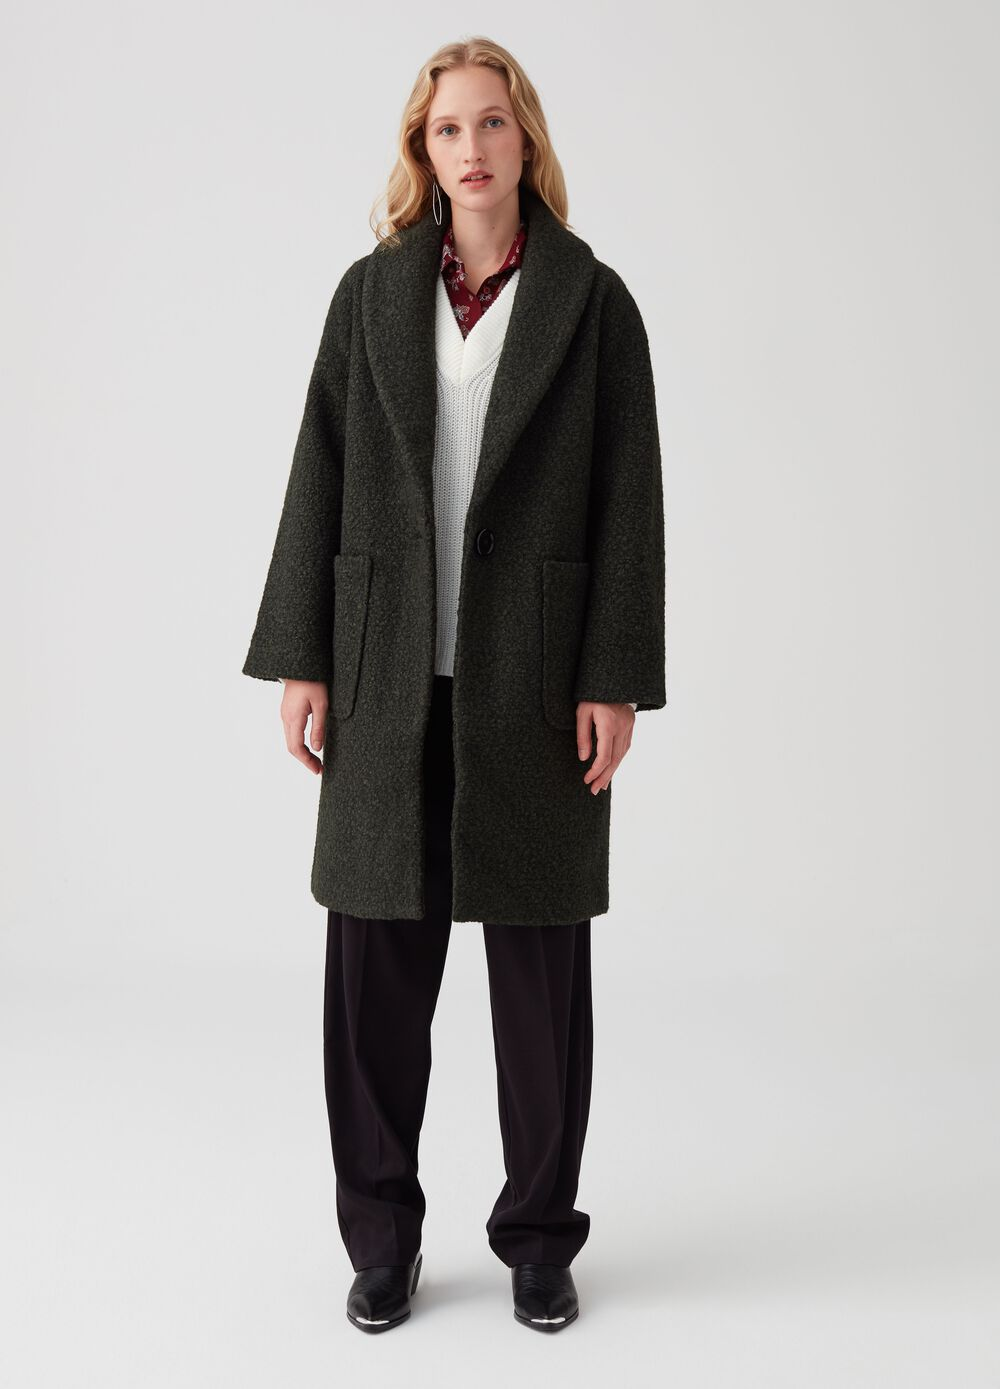 Bouclé fabric coat with pockets